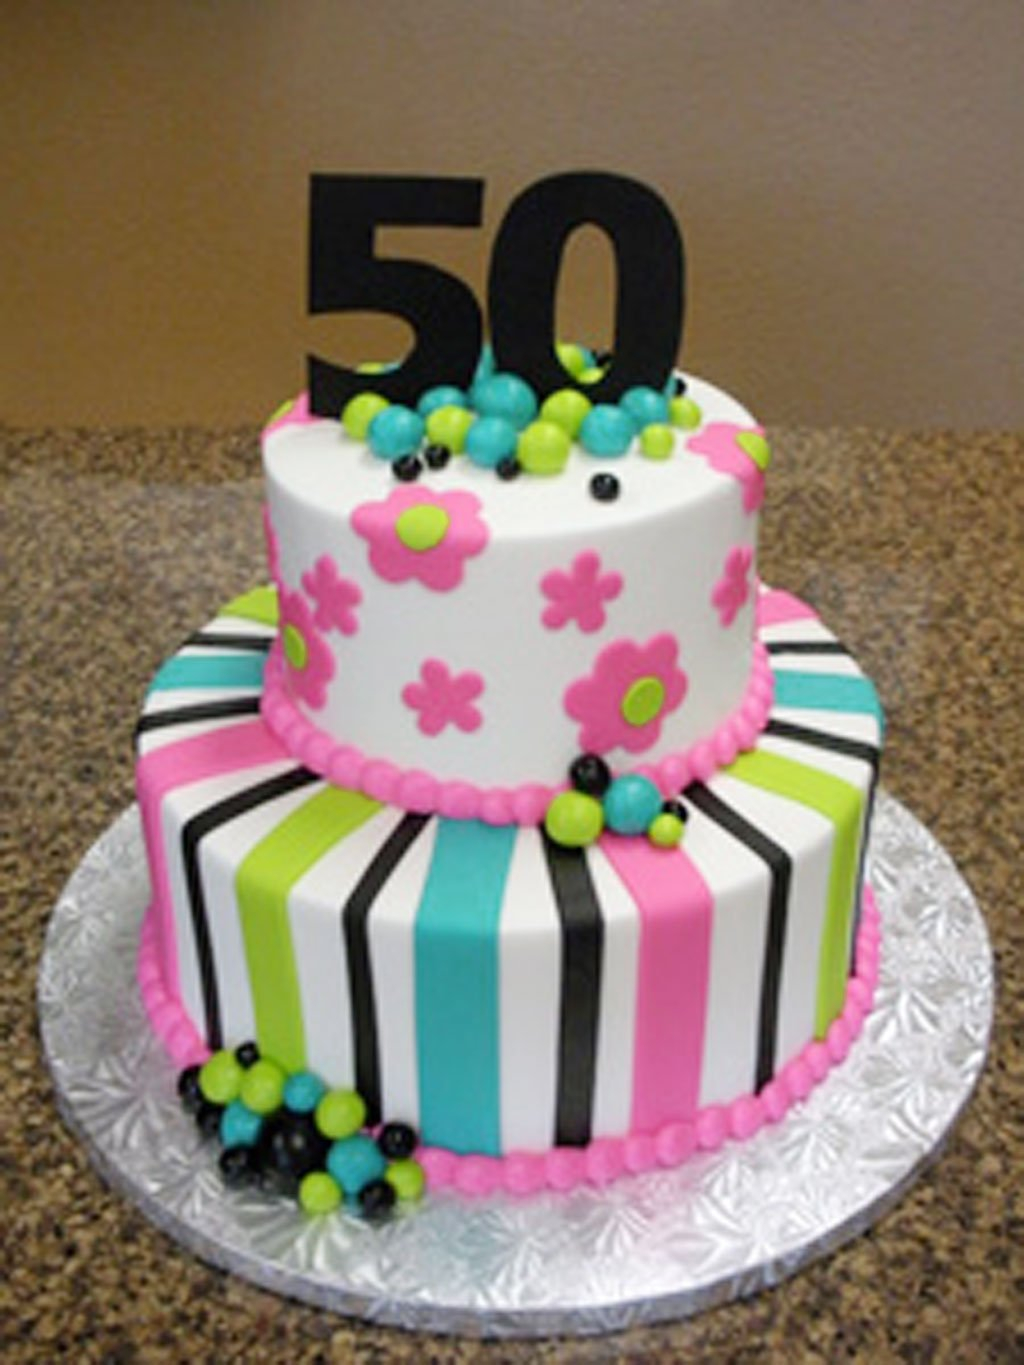 50Th Birthday Cakes For Men 50th Birthday Cakes For Her Cake Man And